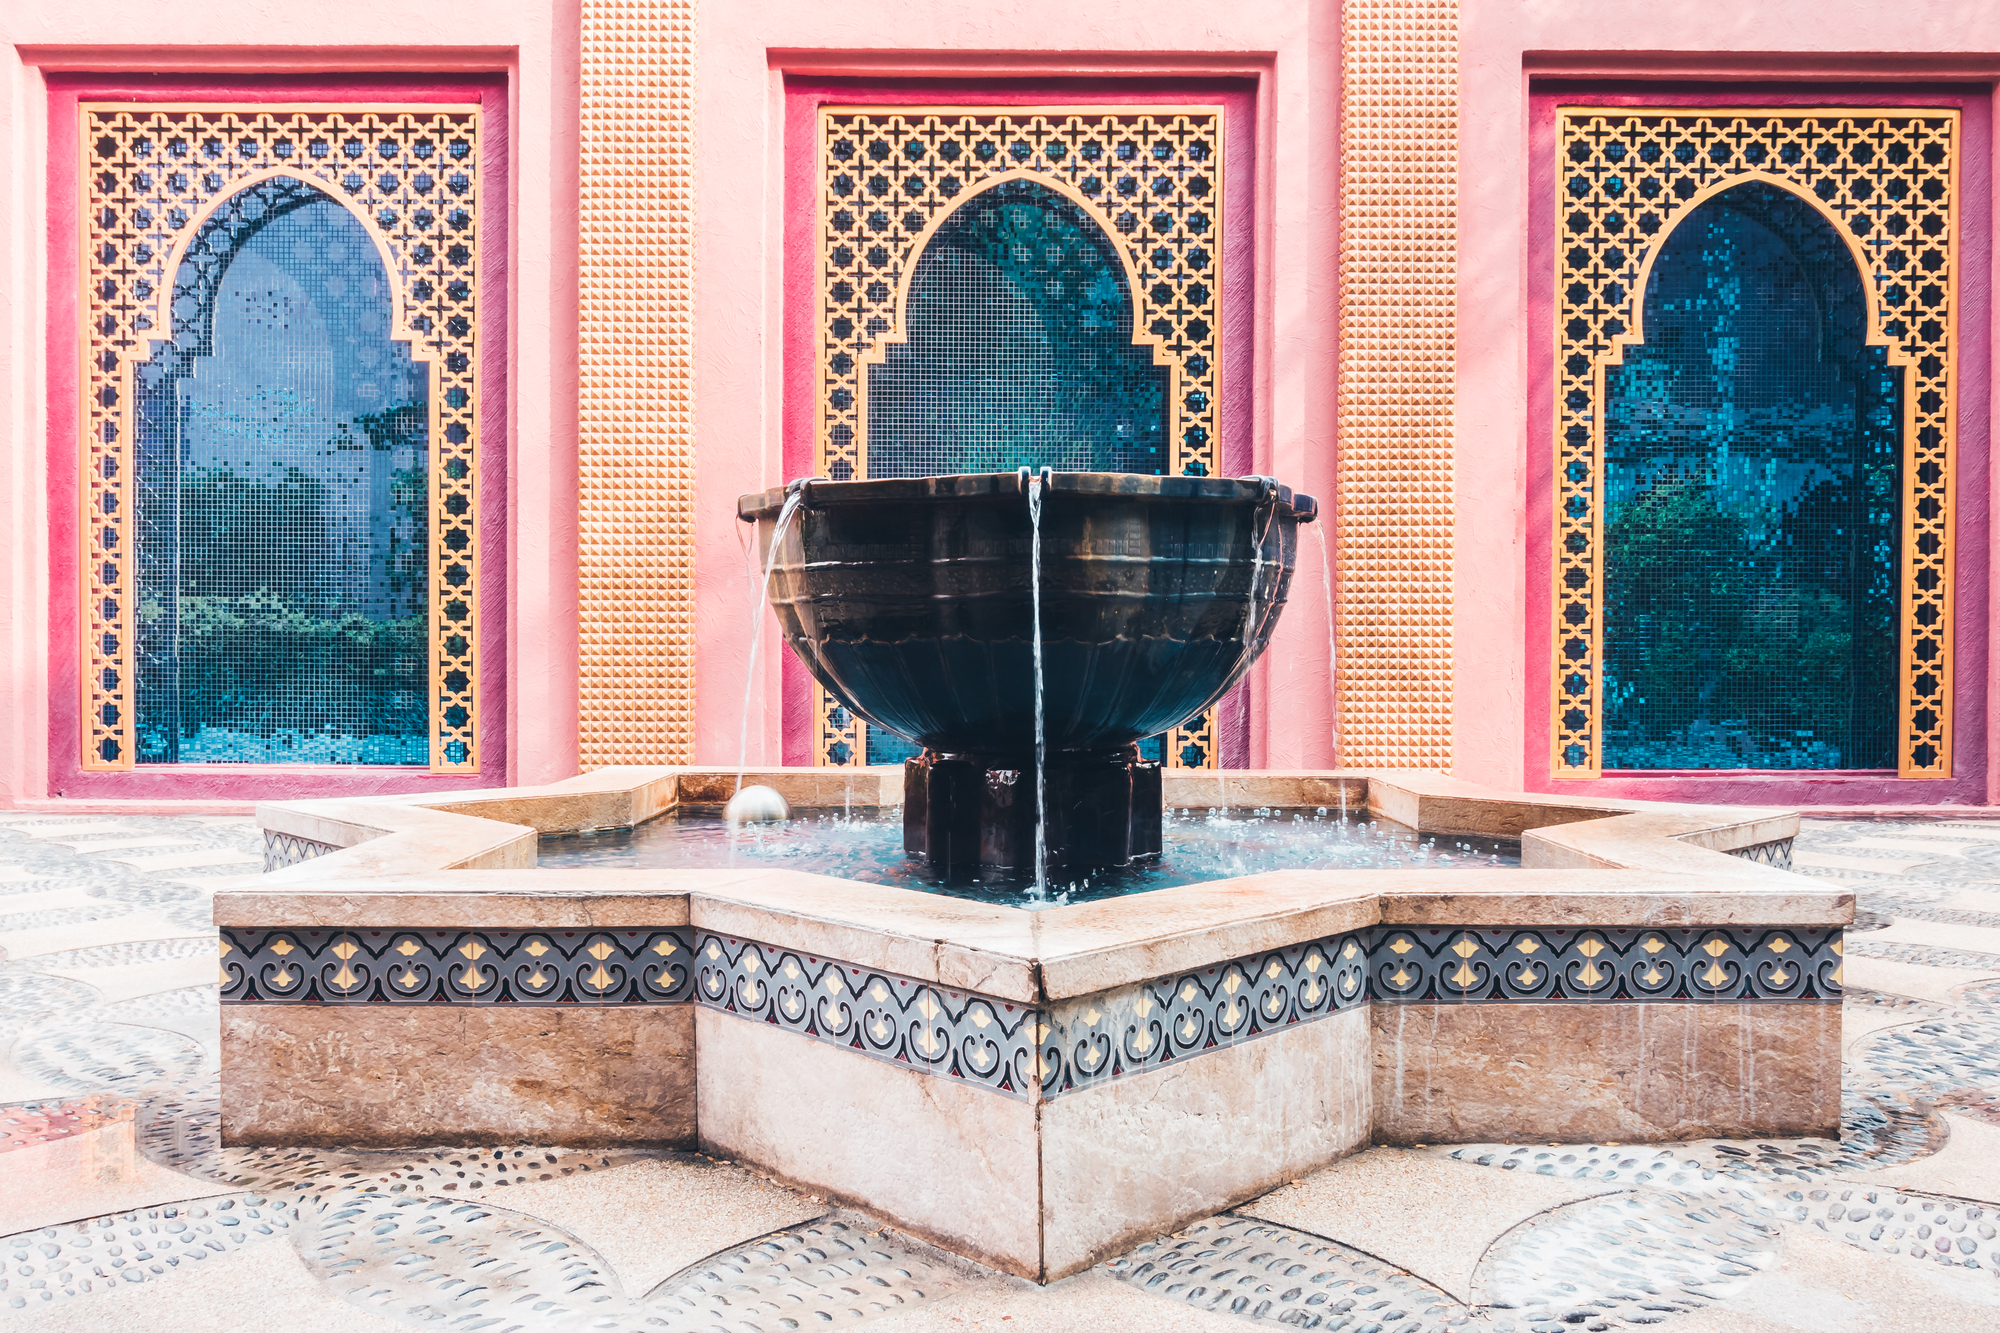 Fountain-Morocco-mosaic